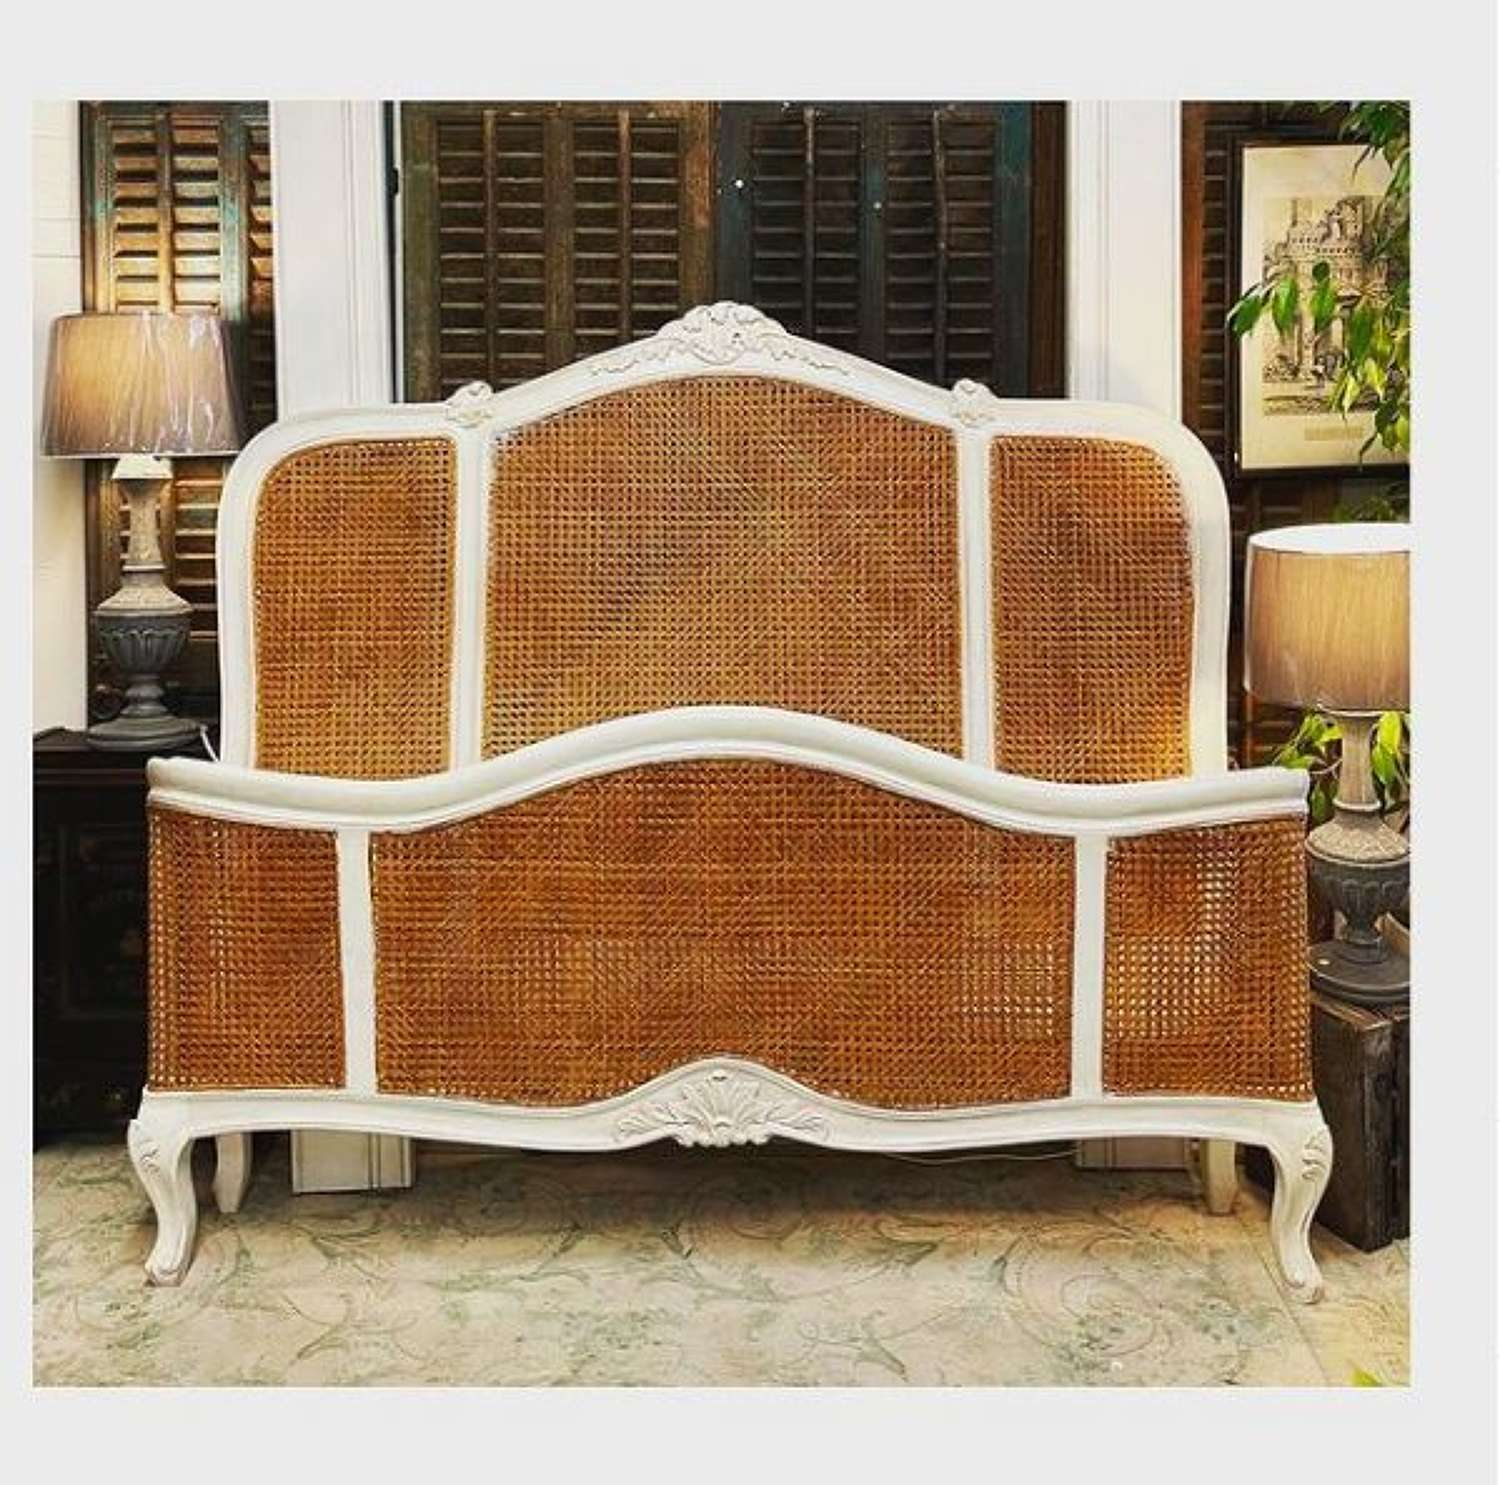 Dreamy bed king size, french style, rattan